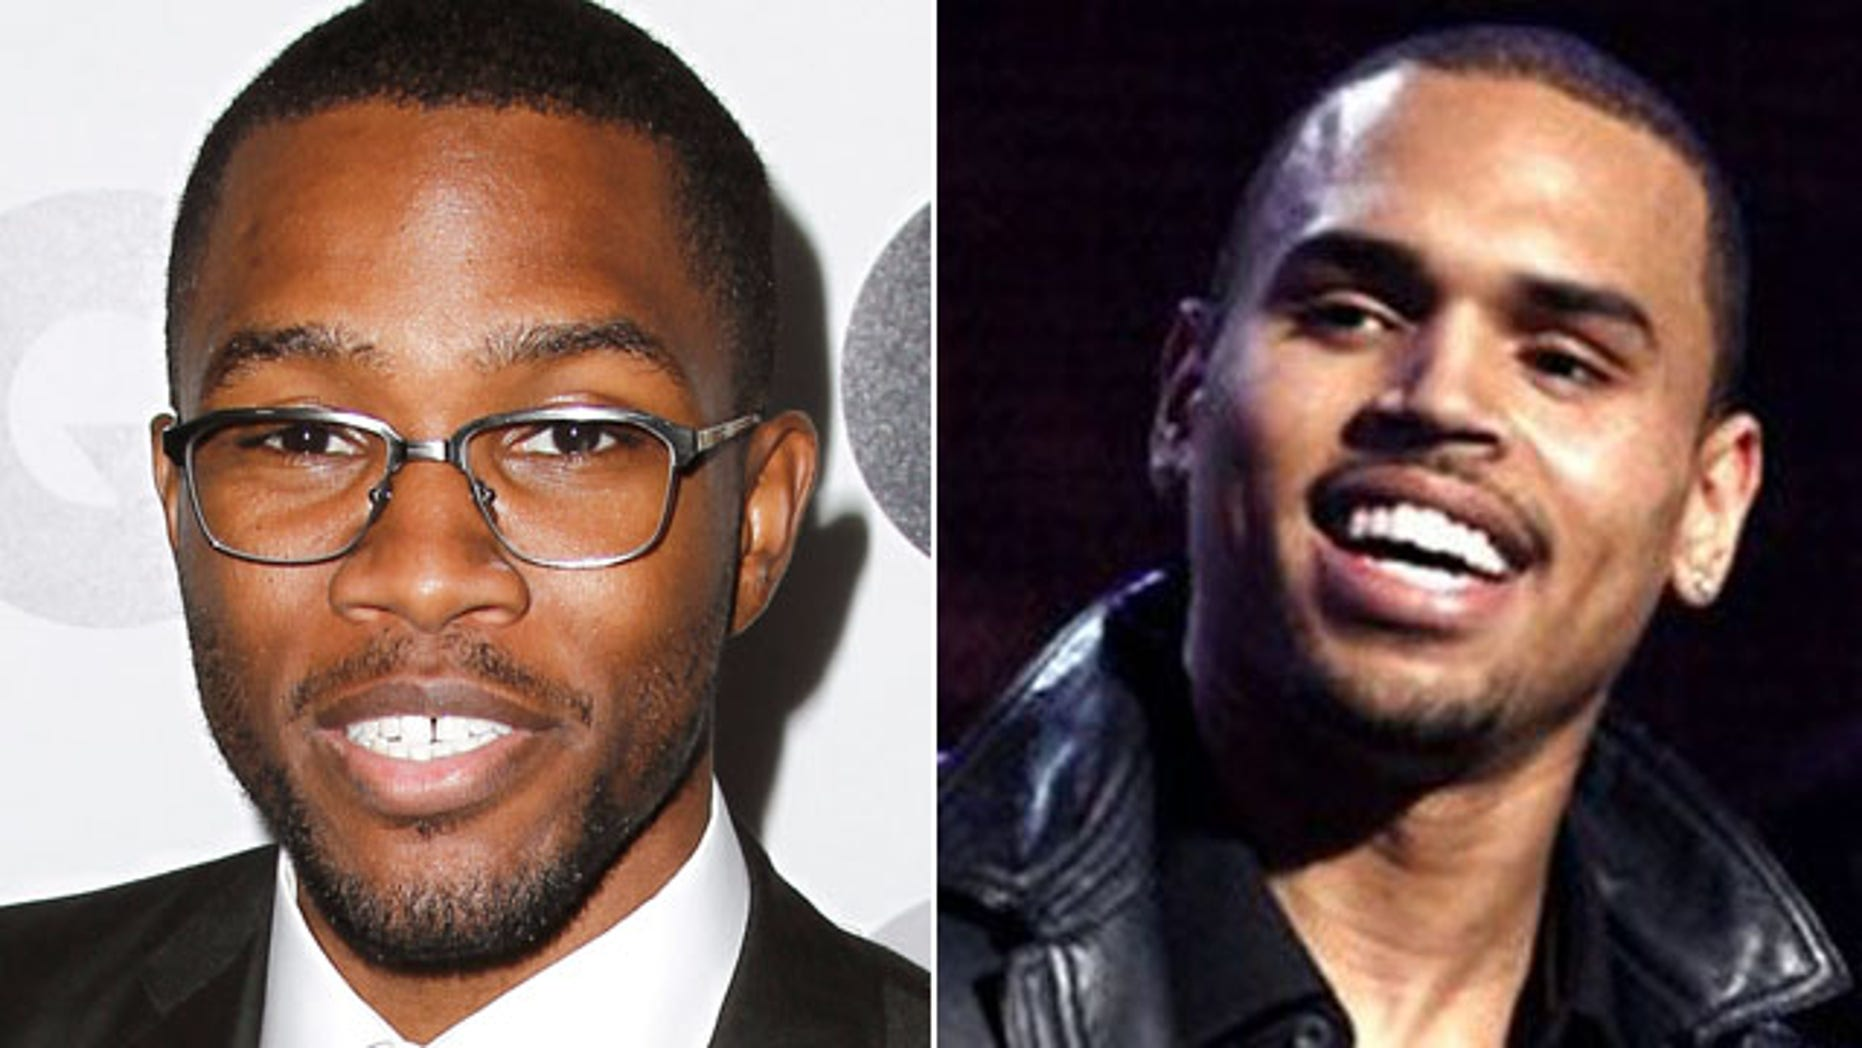 Frank Ocean, left, and Chris Brown.